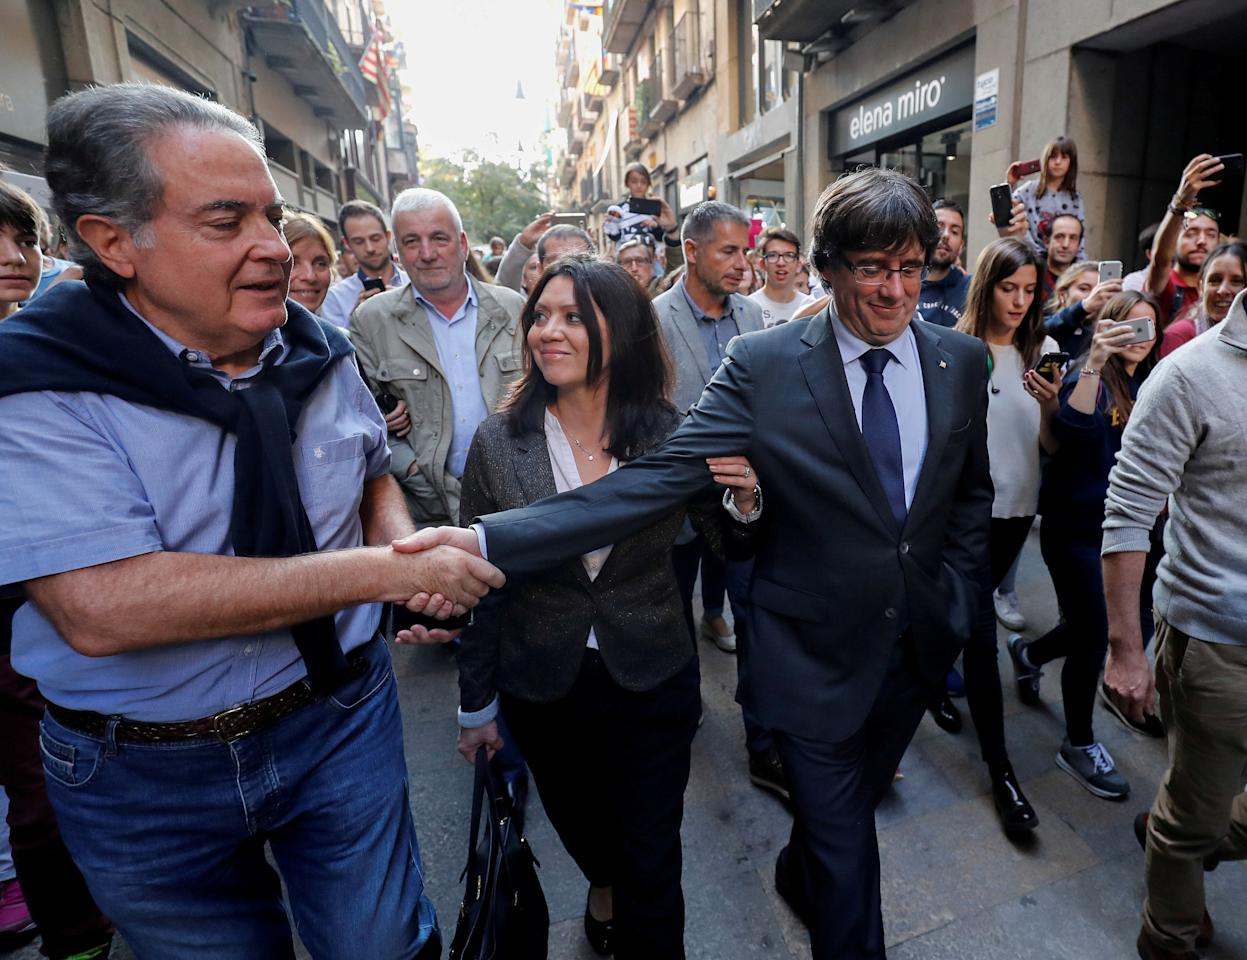 <p>Sacked Catalan President Carles Puigdemont (R) walks with his wife Marcela Topor as he greets a supporter after leaving a restaurant the day after the Catalan regional parliament declared independence from Spain in Girona, Spain, Oct. 28, 2017. (Photo: Rafael Marchante/Reuters) </p>